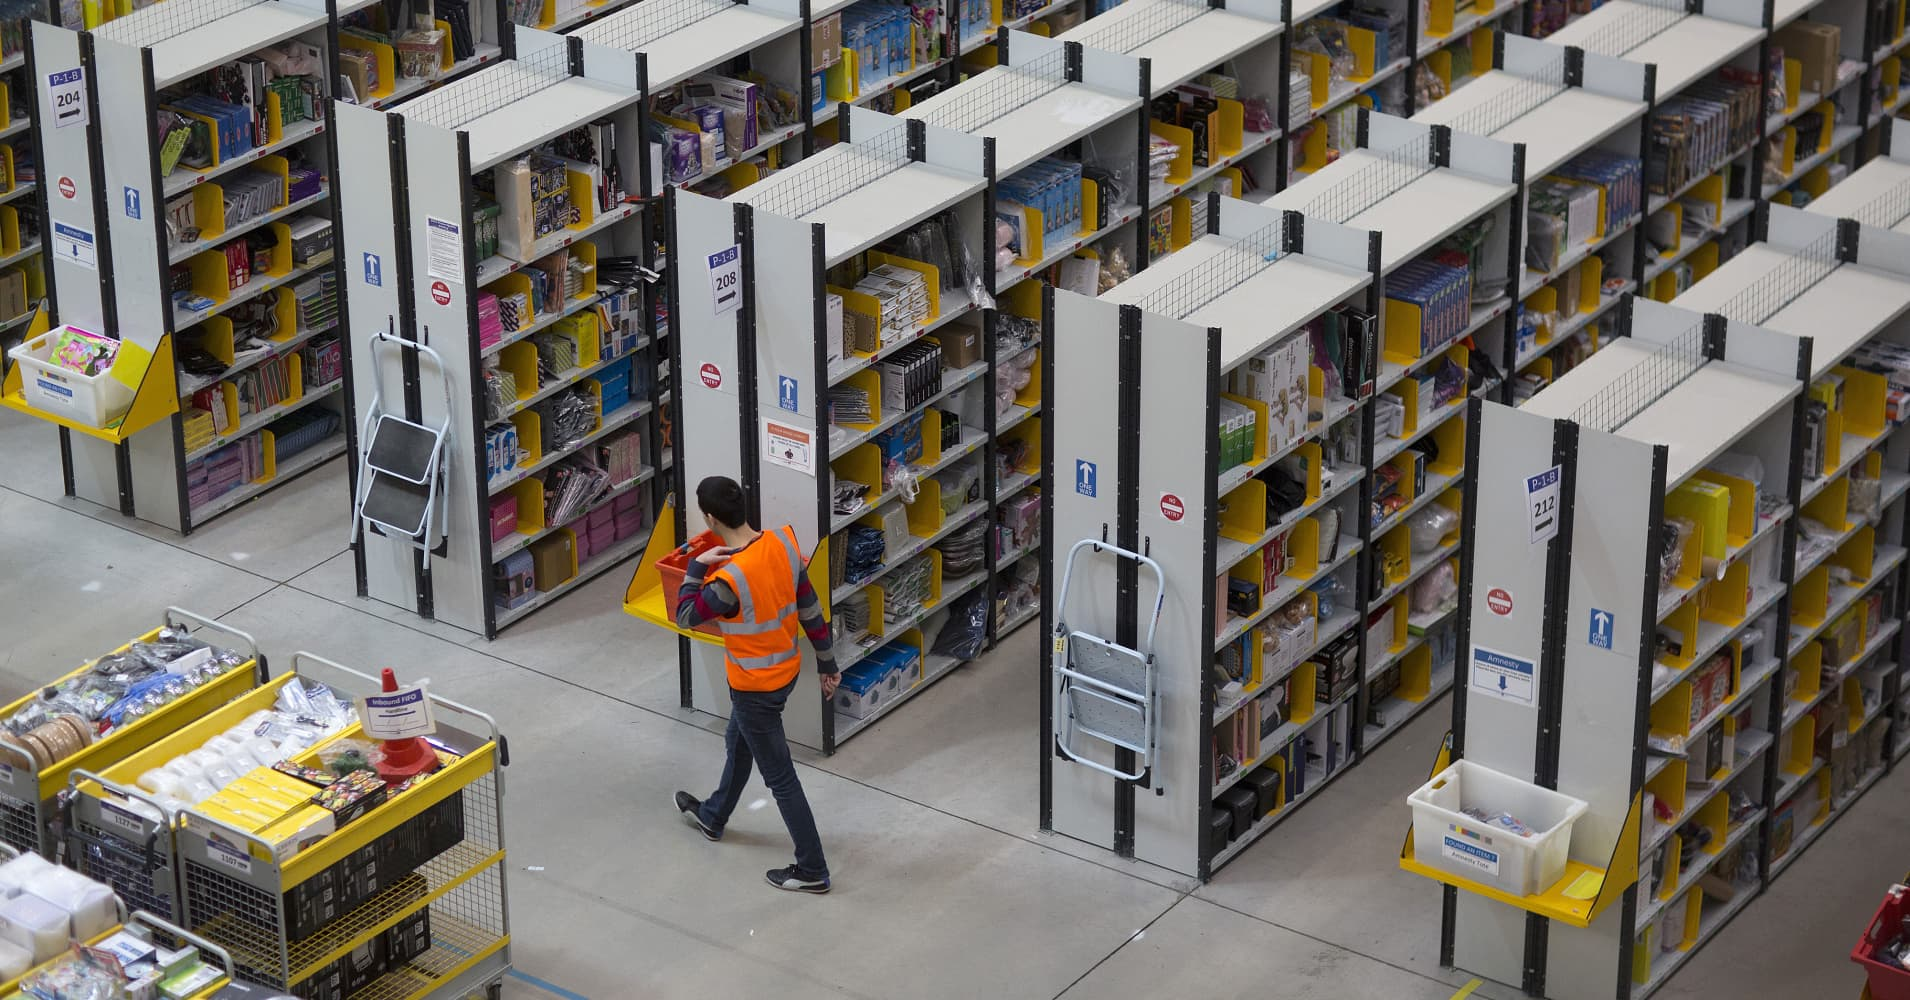 An employee walks between rows of storage racks at one of Amazon.com's fulfillment centers in Rugeley, U.K.